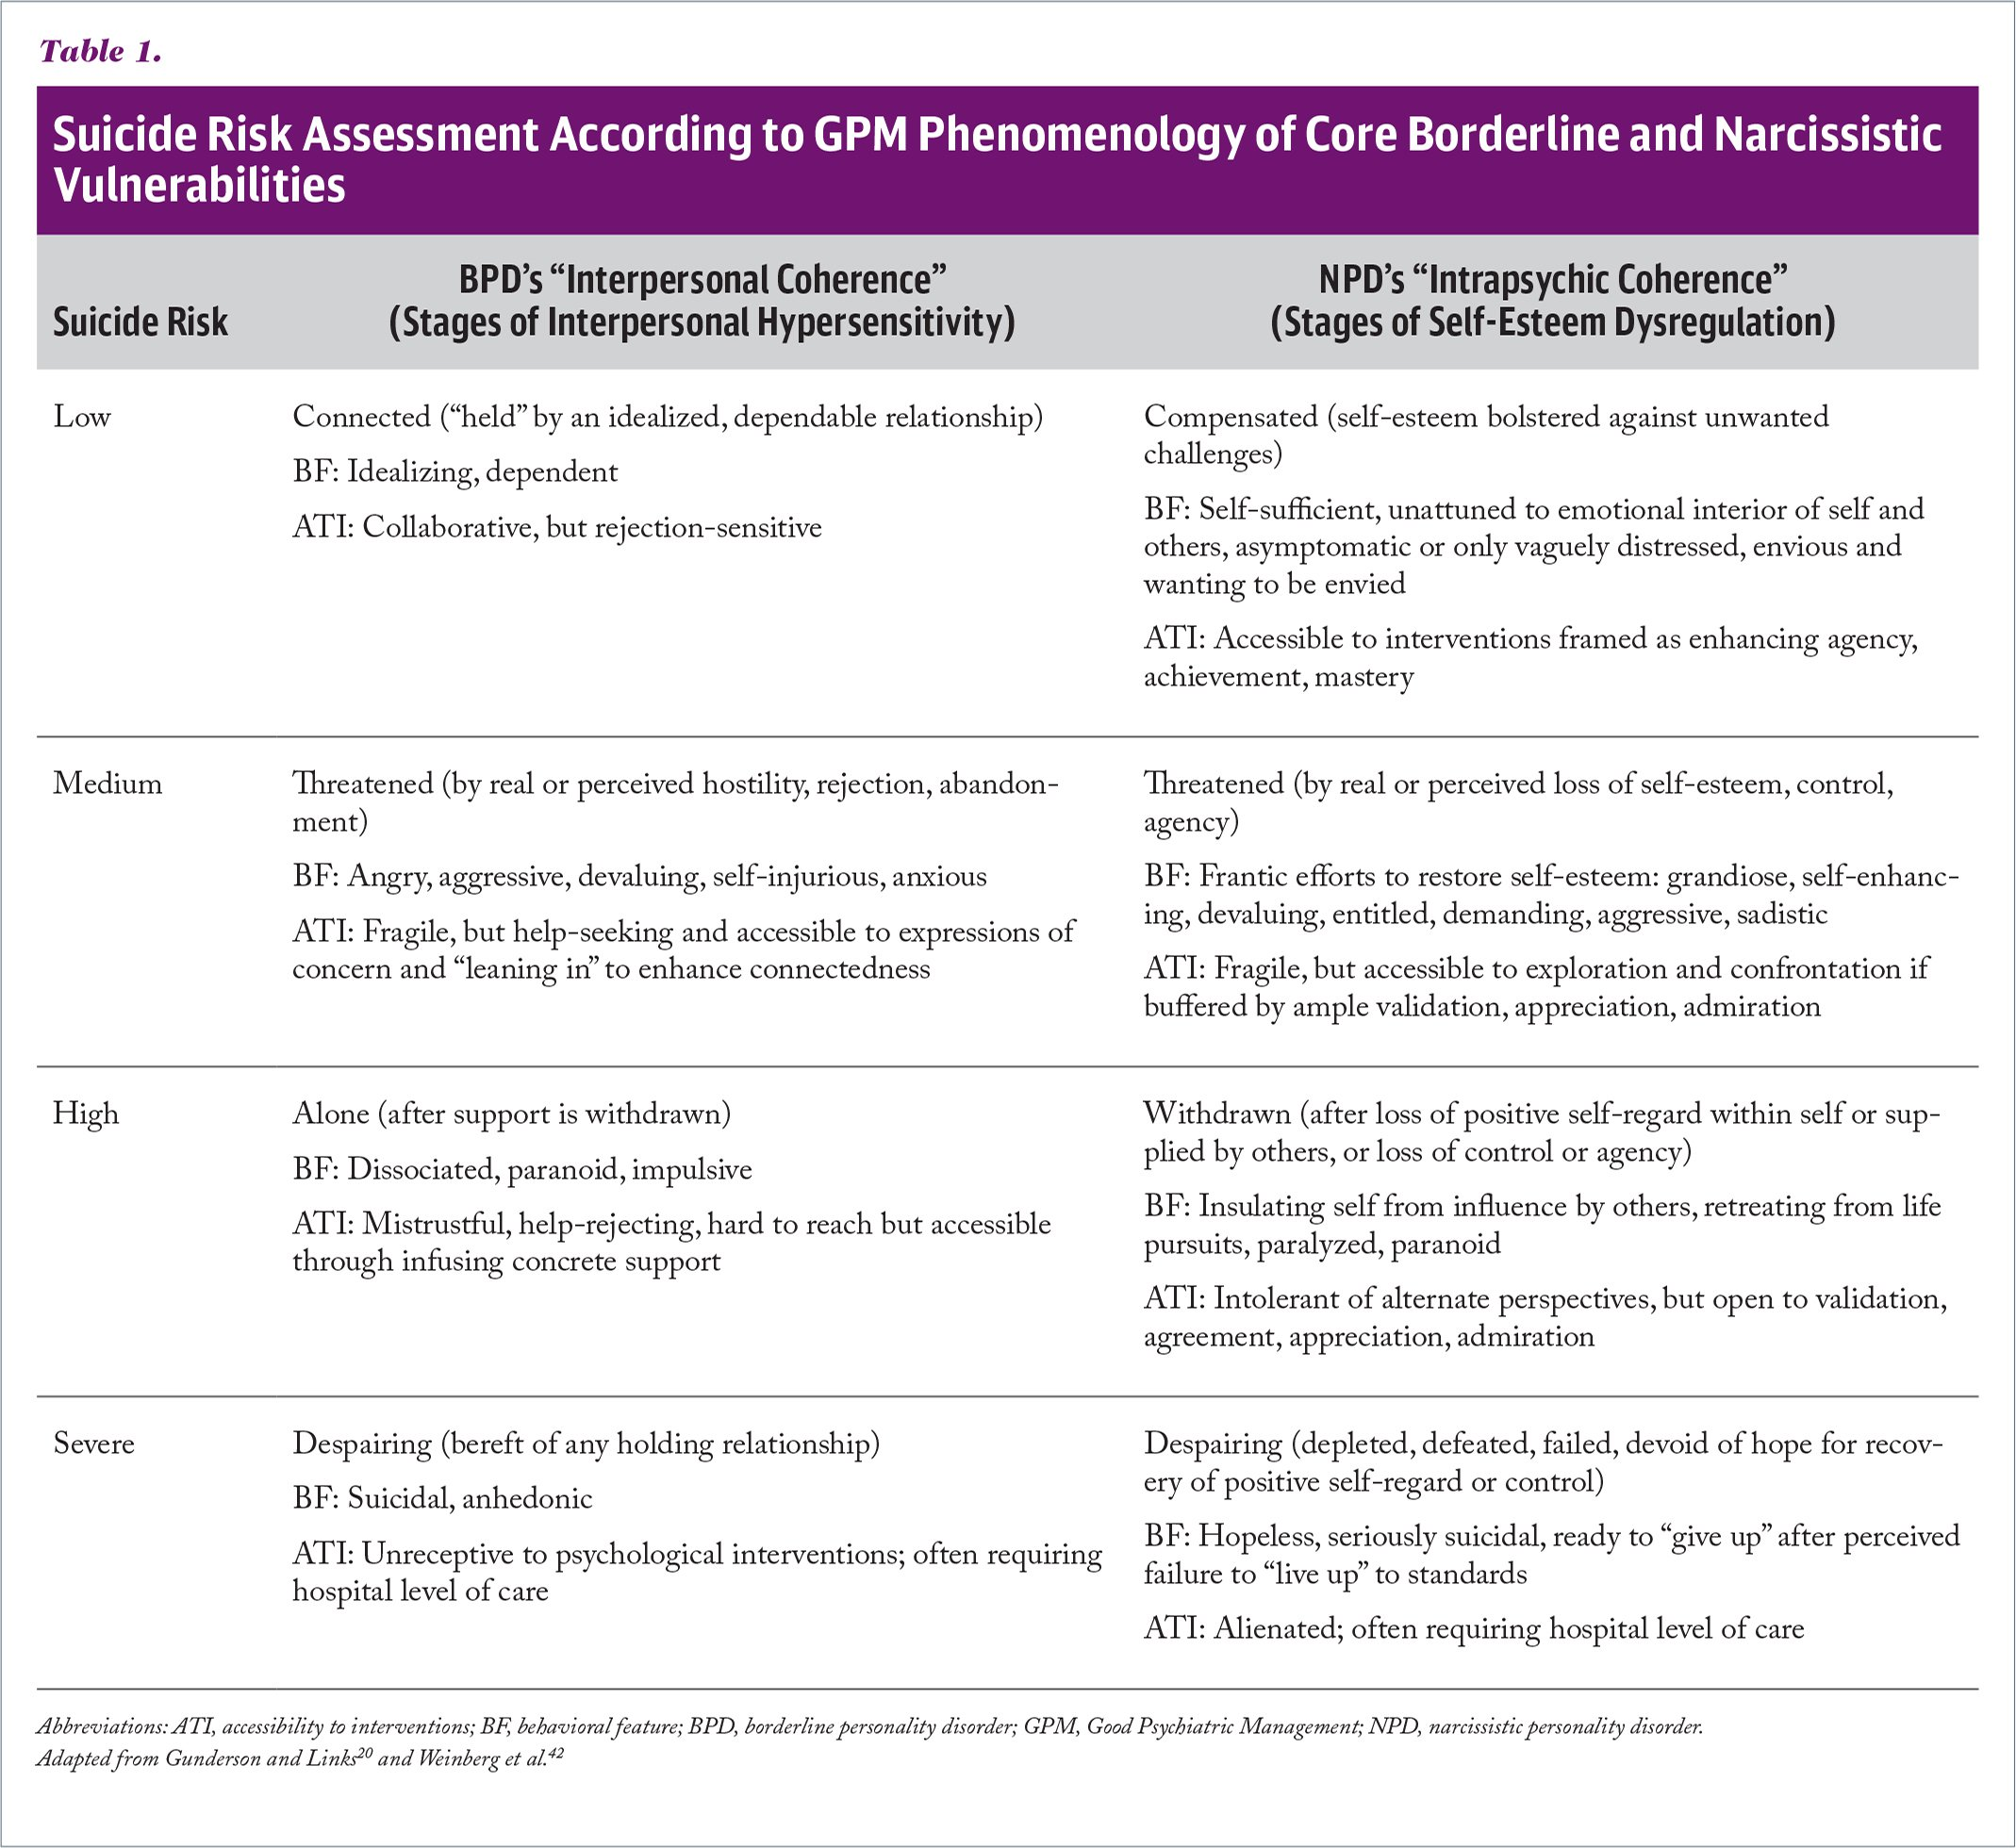 Suicide Risk Assessment According to GPM Phenomenology of Core Borderline and Narcissistic Vulnerabilities